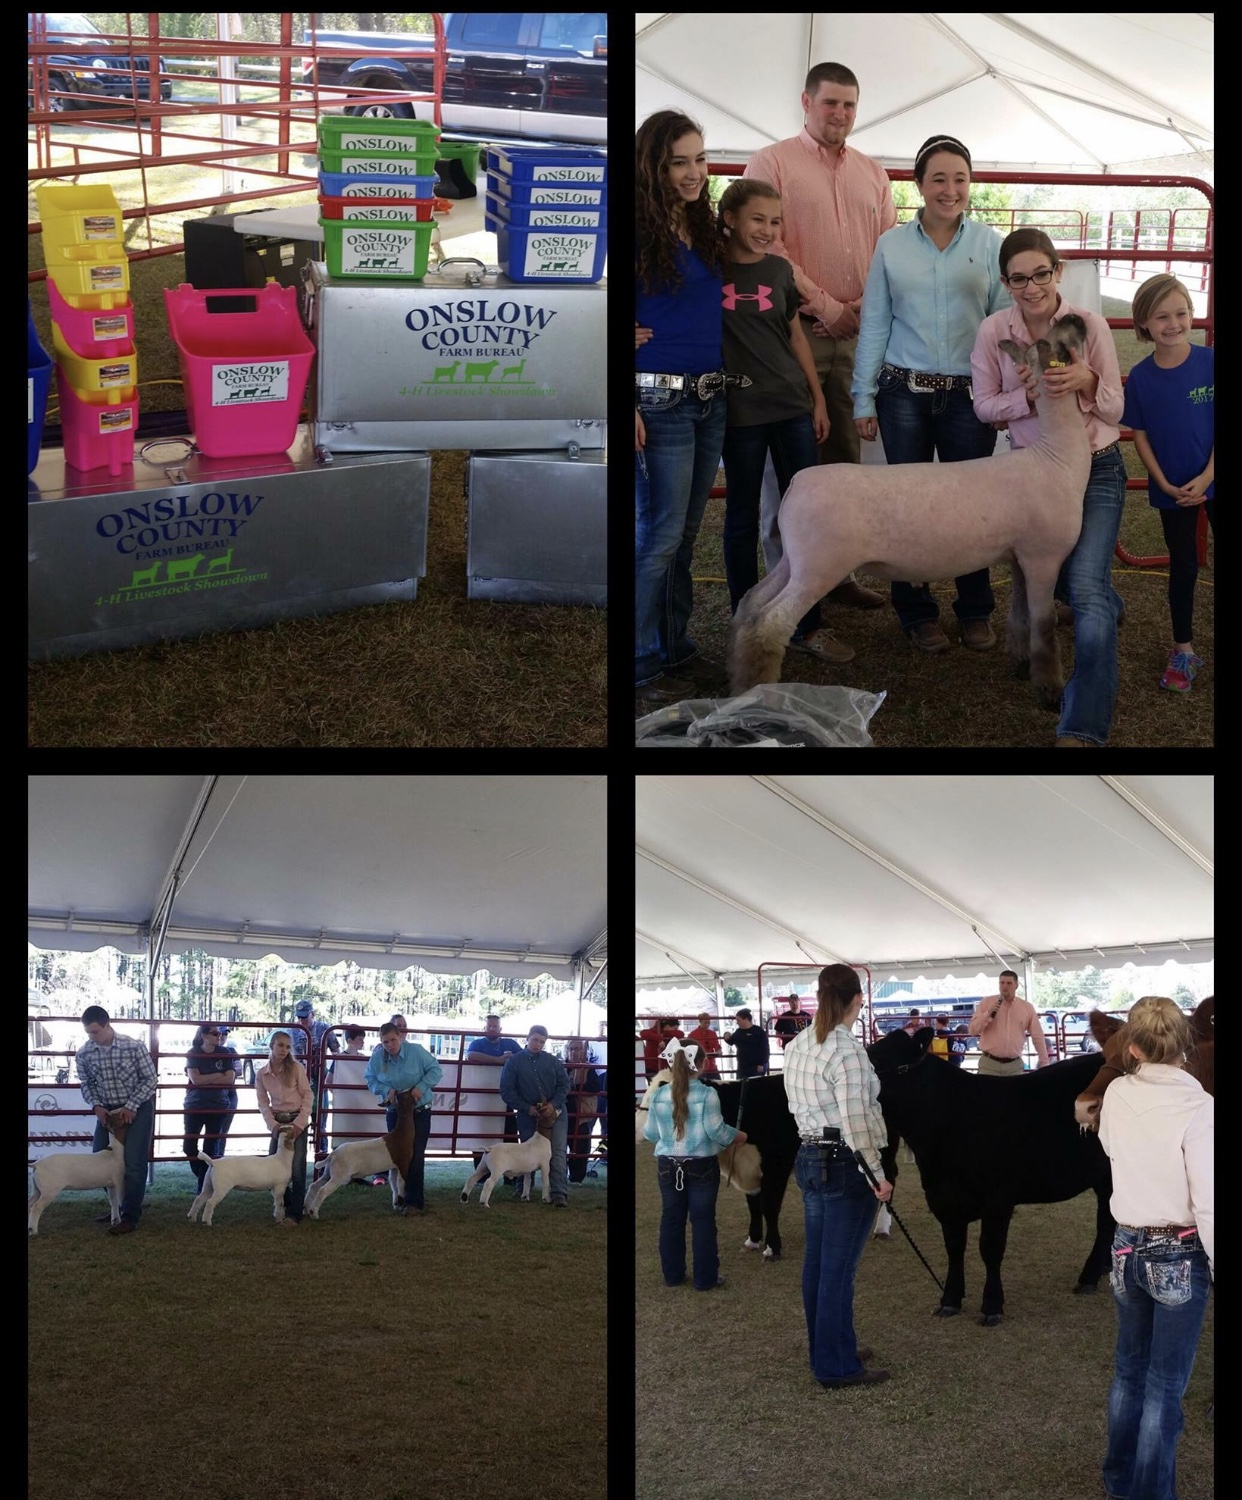 Images of livestock show